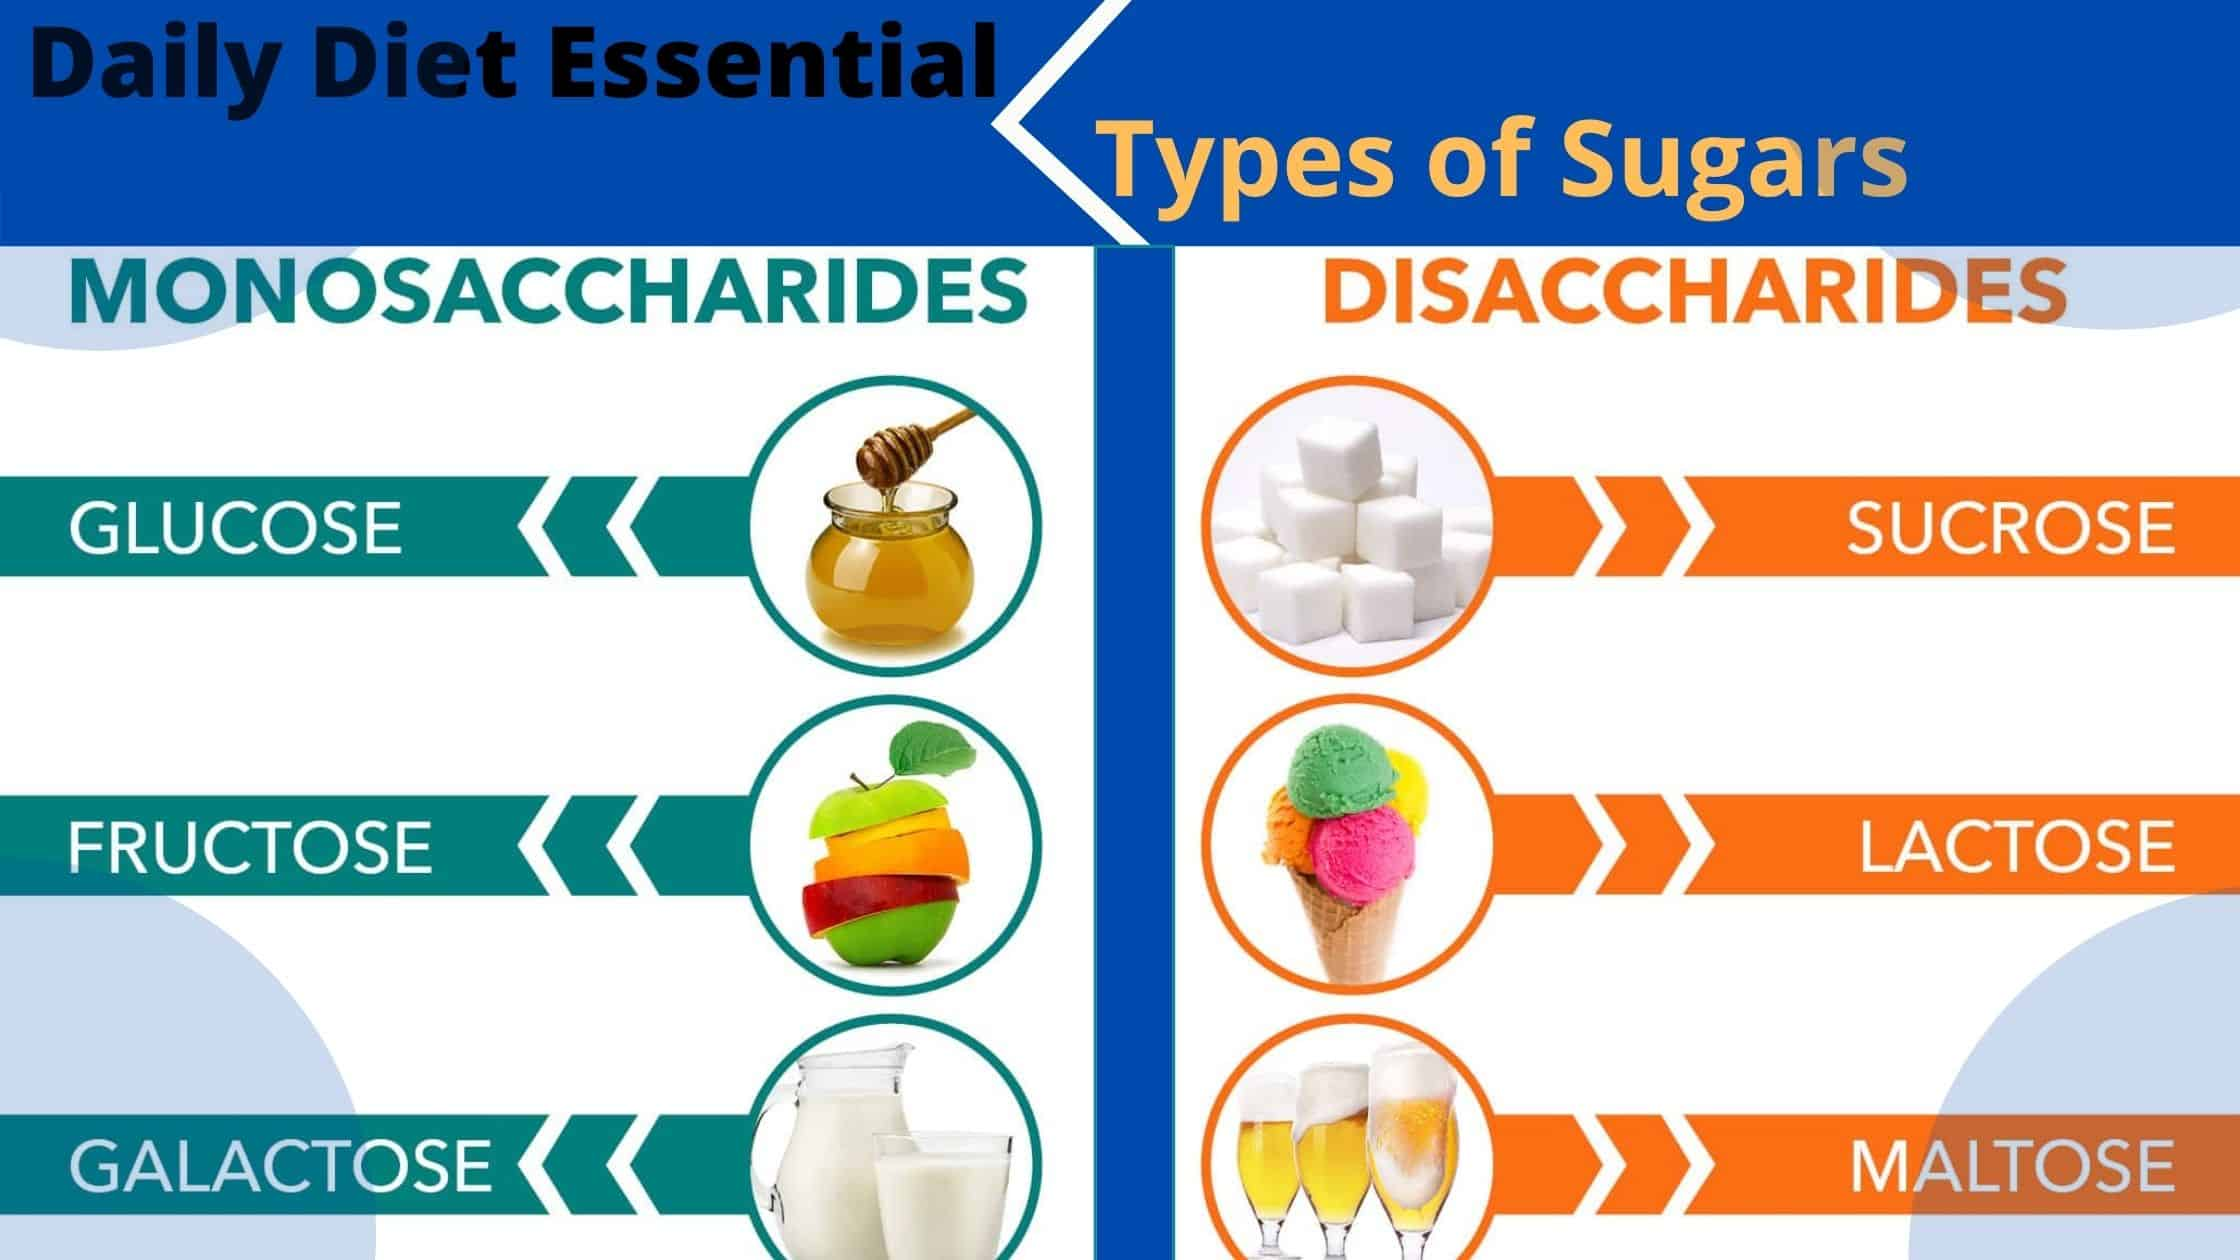 Types of sugars